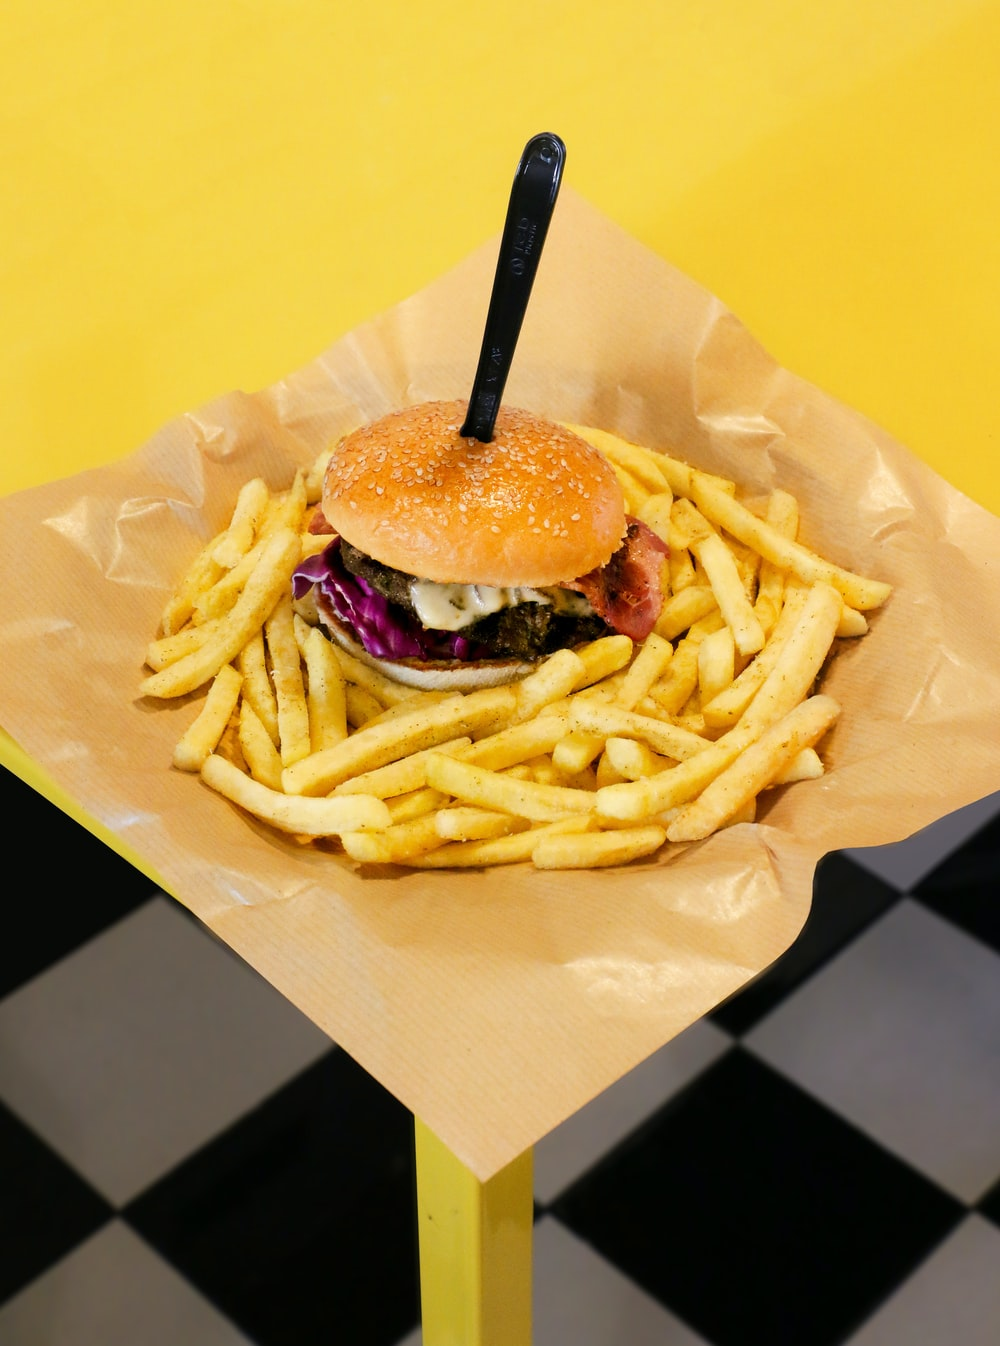 burger with fries on white paper